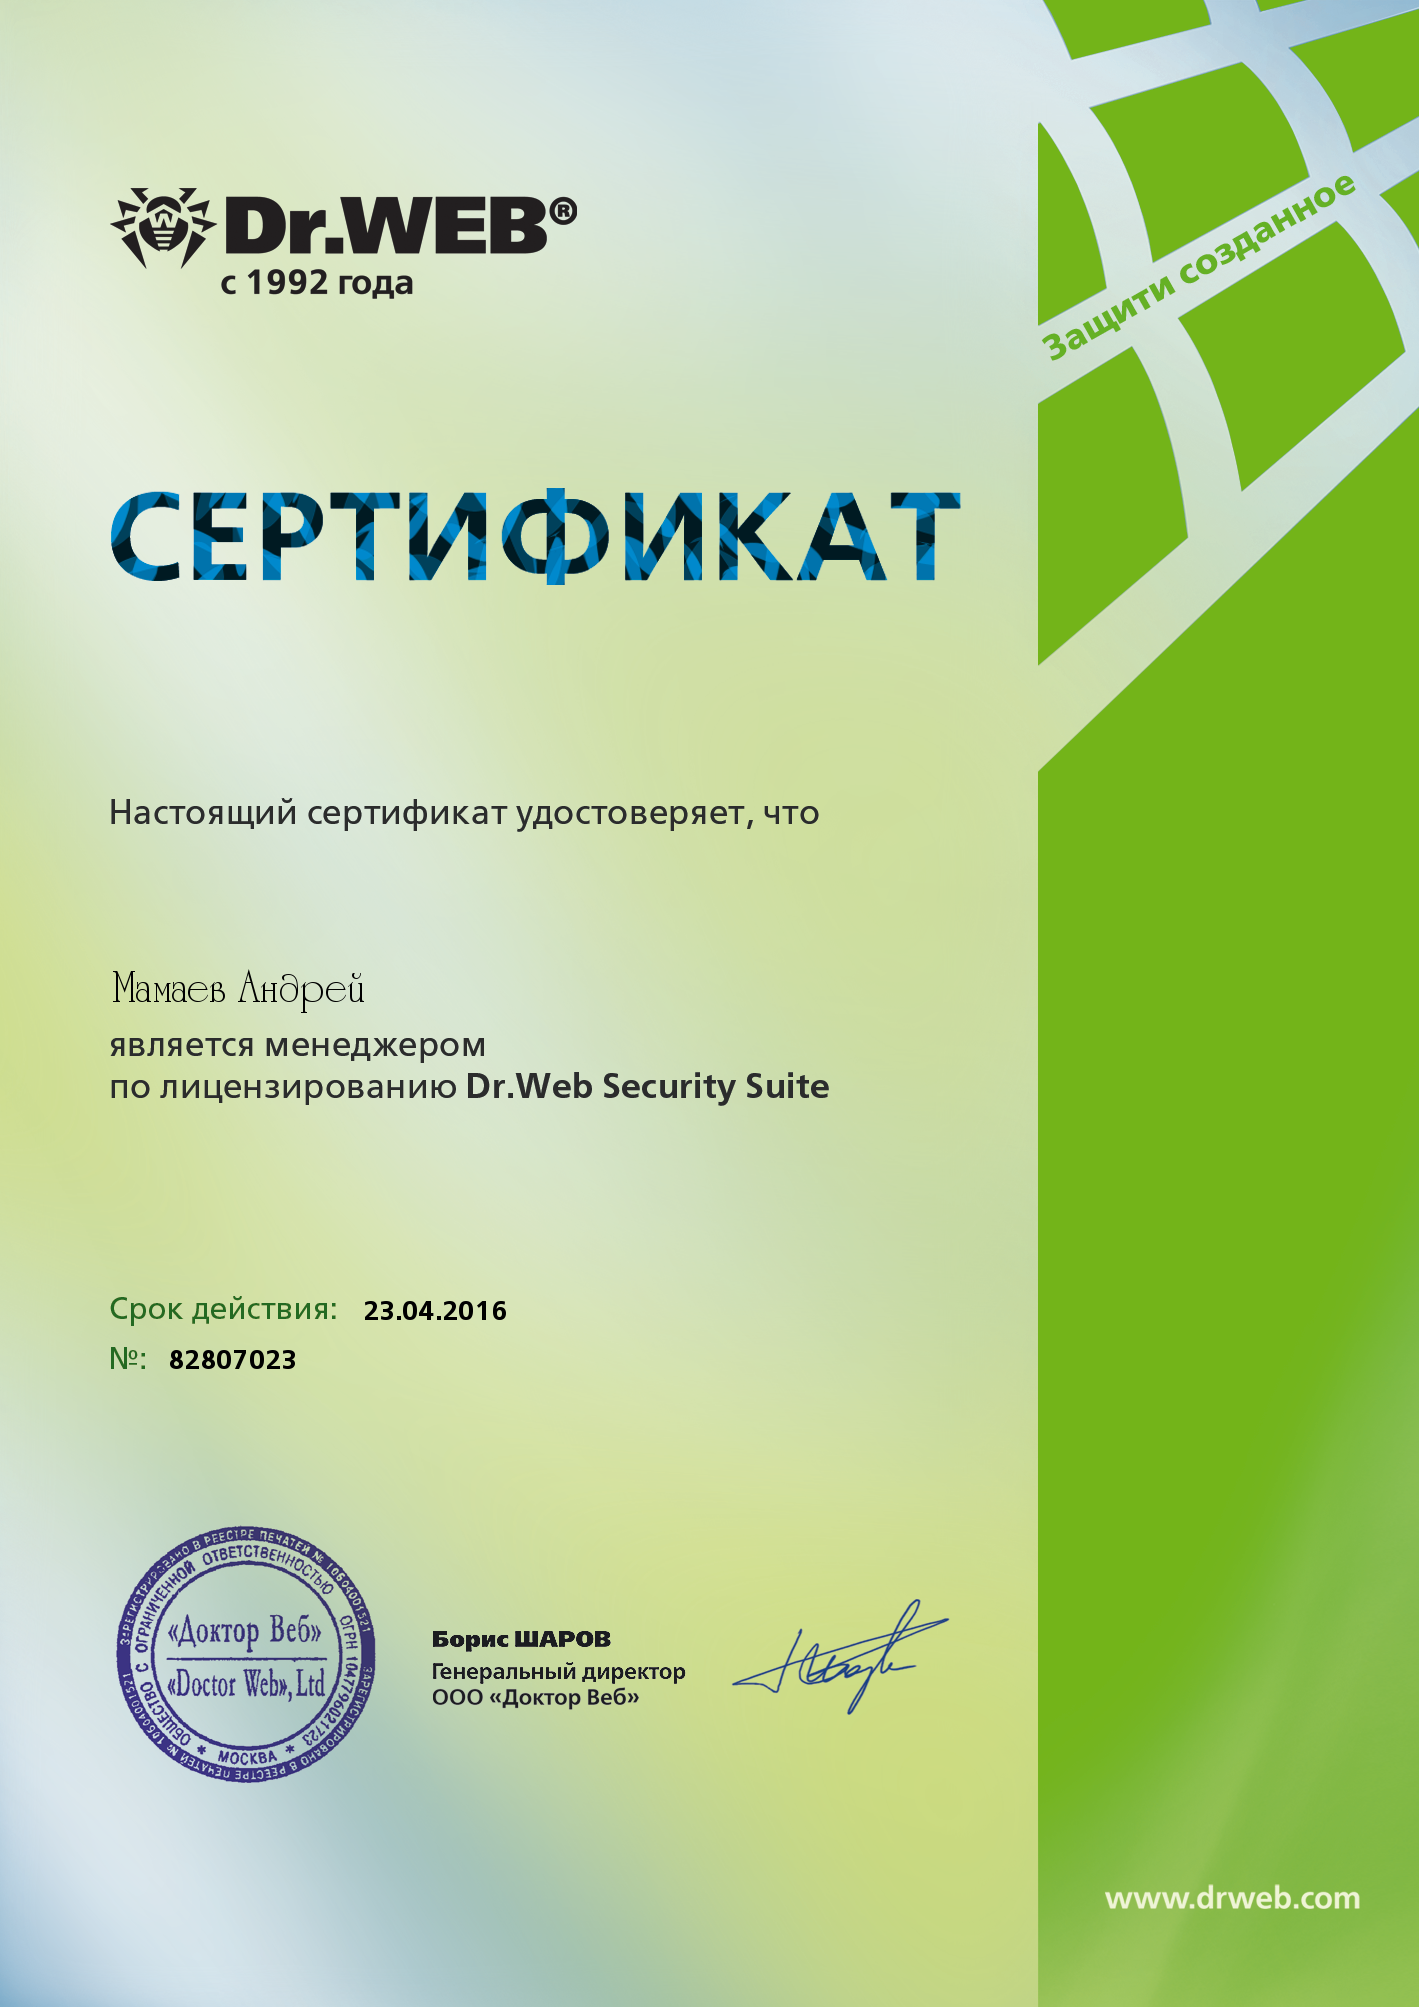 (DWCERT-020-1) Dr Web Security Suite (Мамаев) 23.04.2016